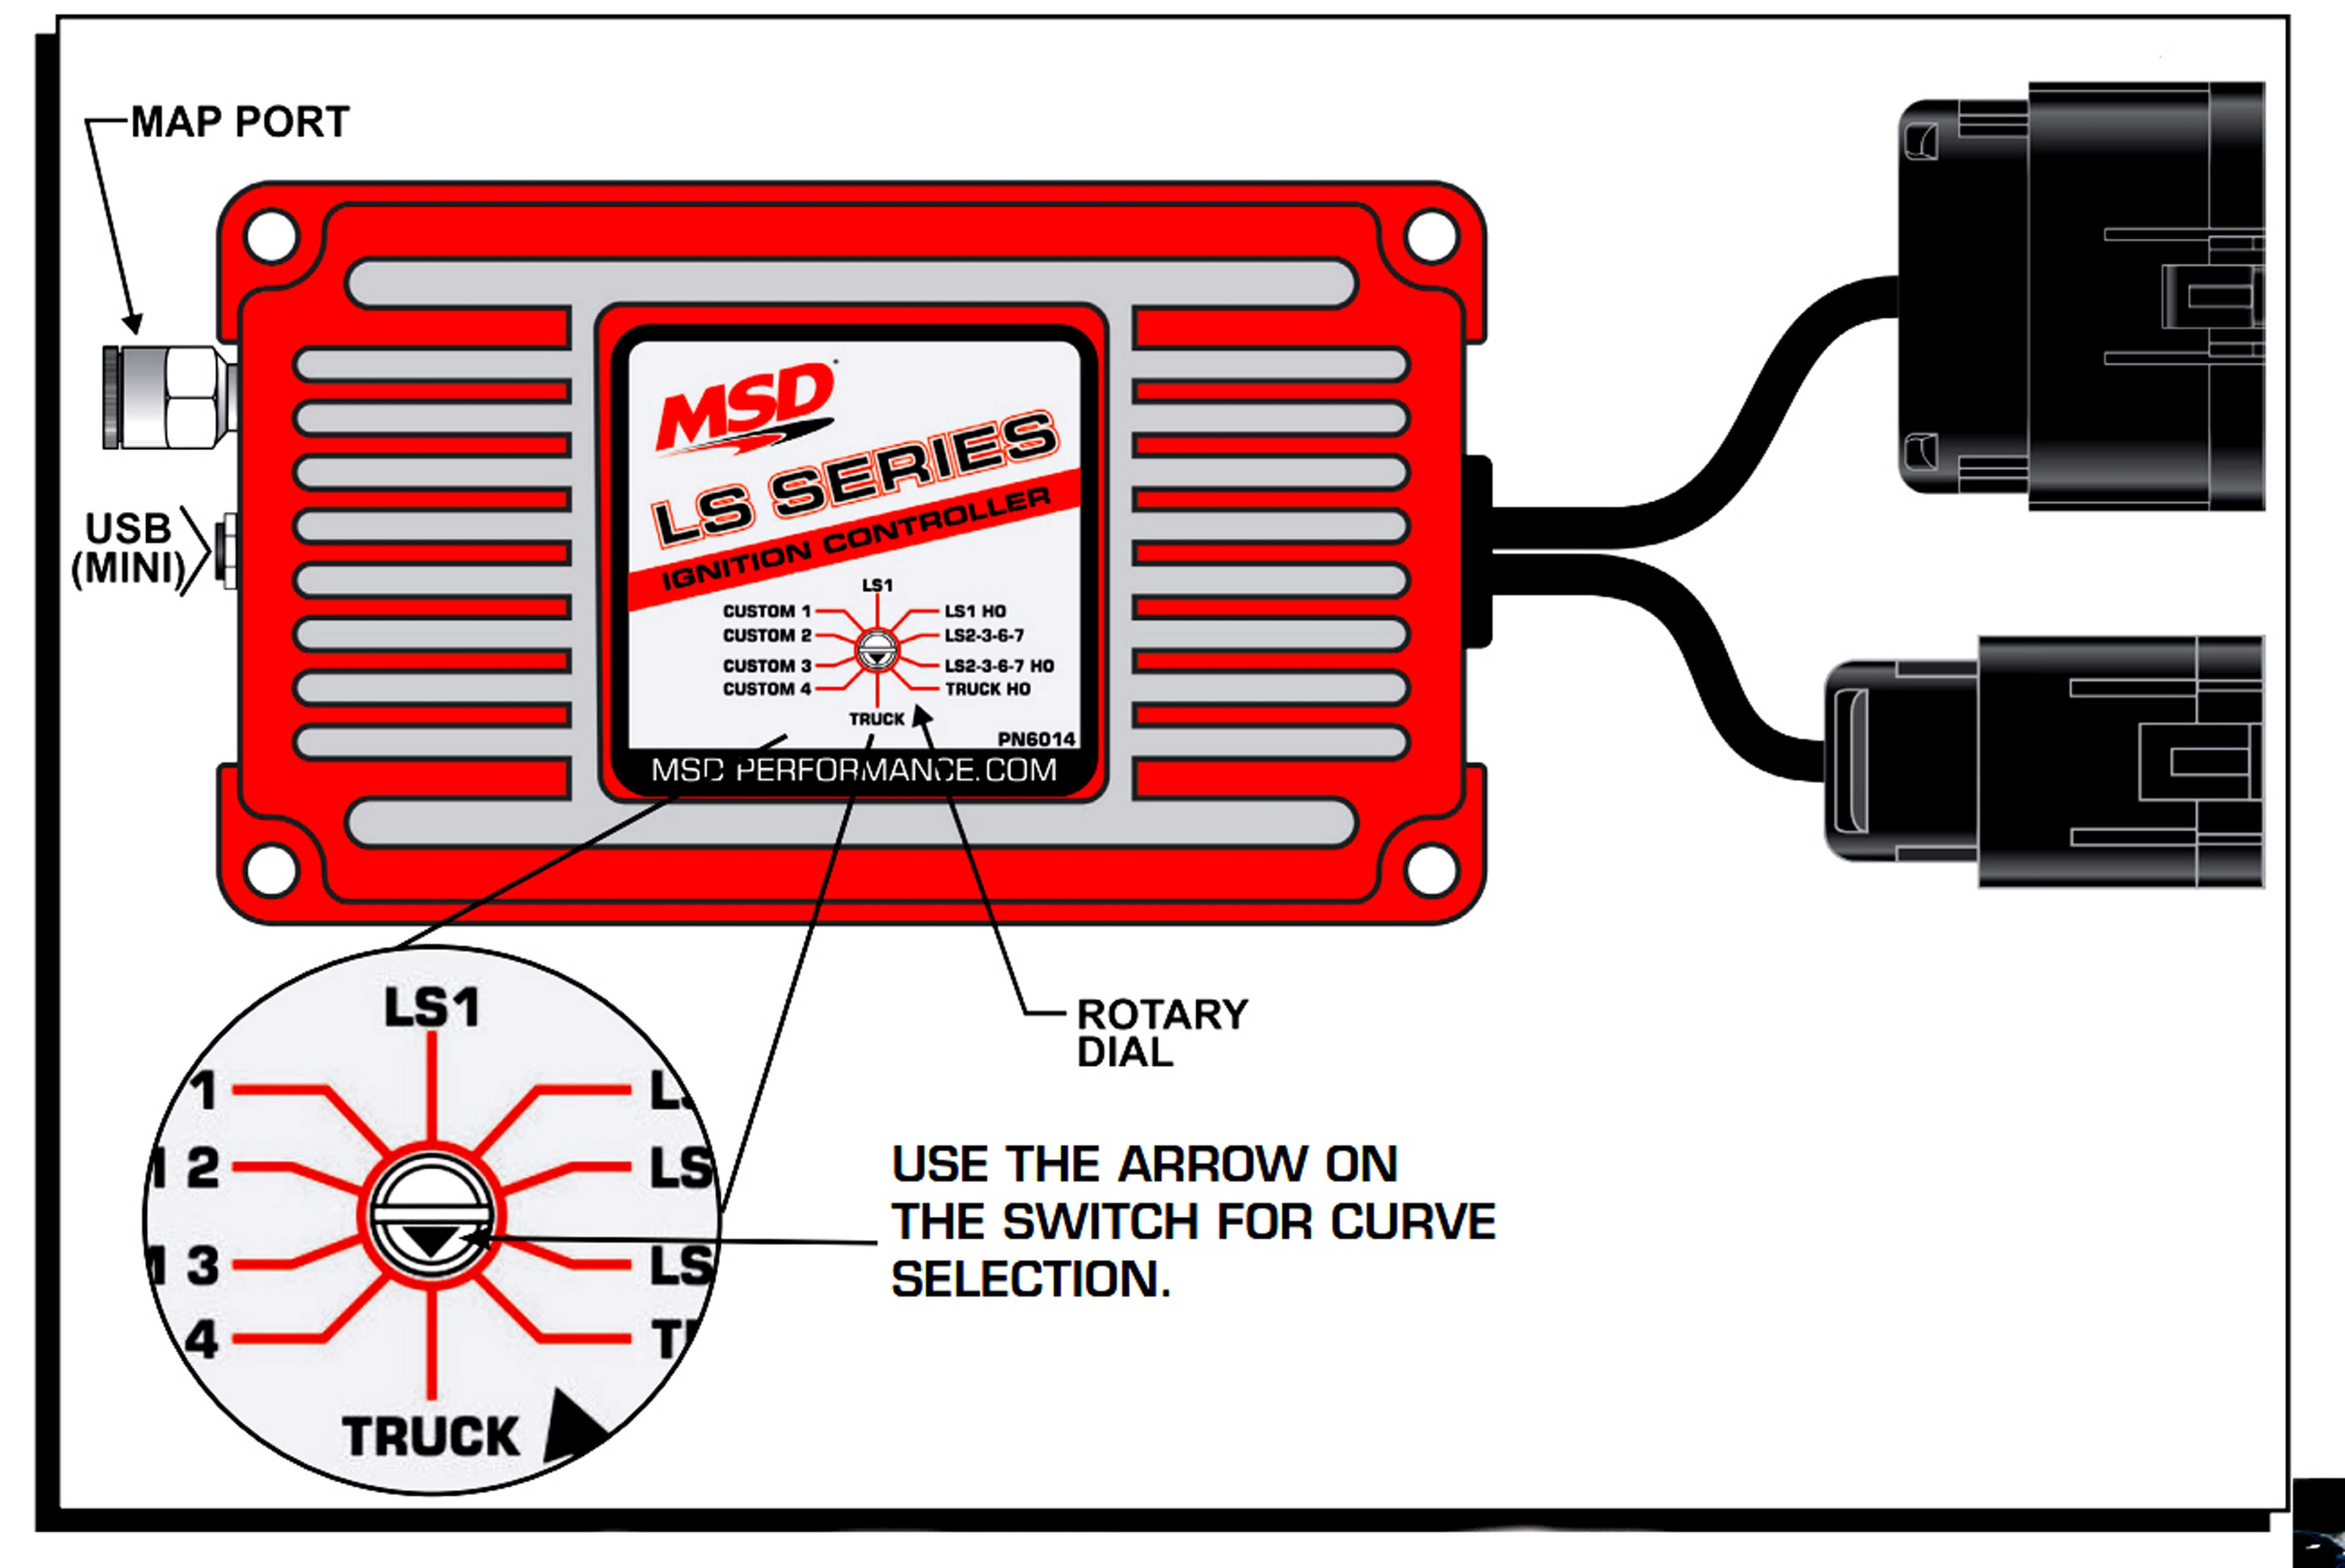 hight resolution of msd ignition controller for ls engines has huge feature set hotthe ho curves generally add 4